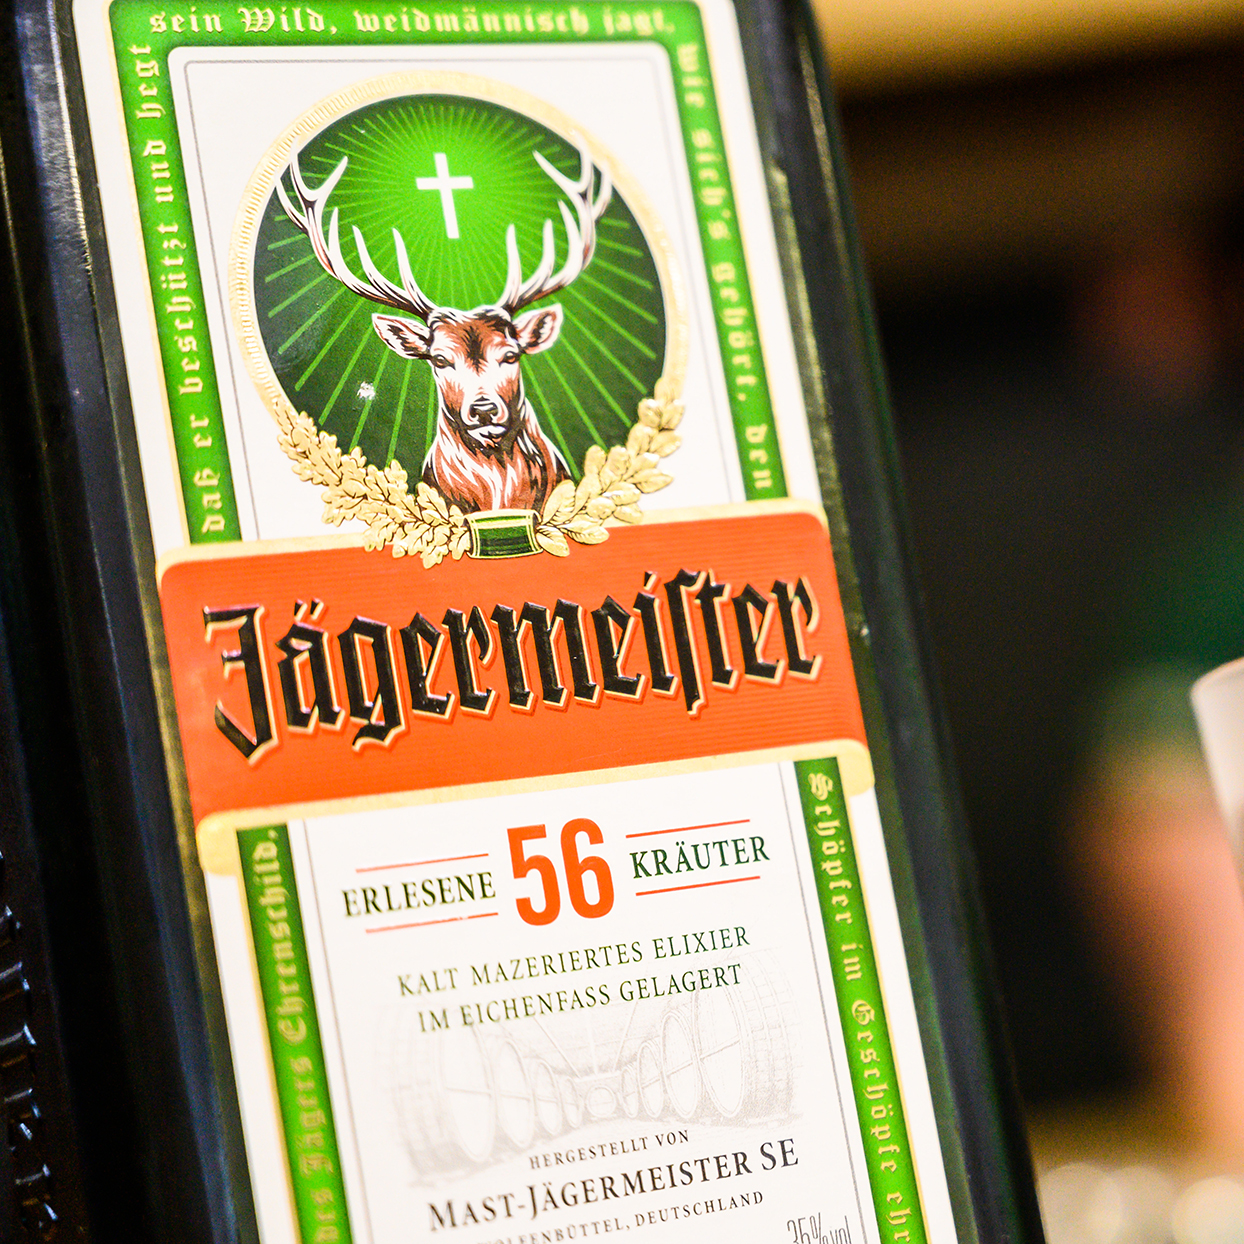 A bottle and a glass of Jägermeister schnapps stand on a counter at the opening of the newly expanded bottling plant of the beverage manufacturer Jägermeister. With this expansion, Jägermeister has, according to its own information, realised one of the largest spirits bottling plants in Europe